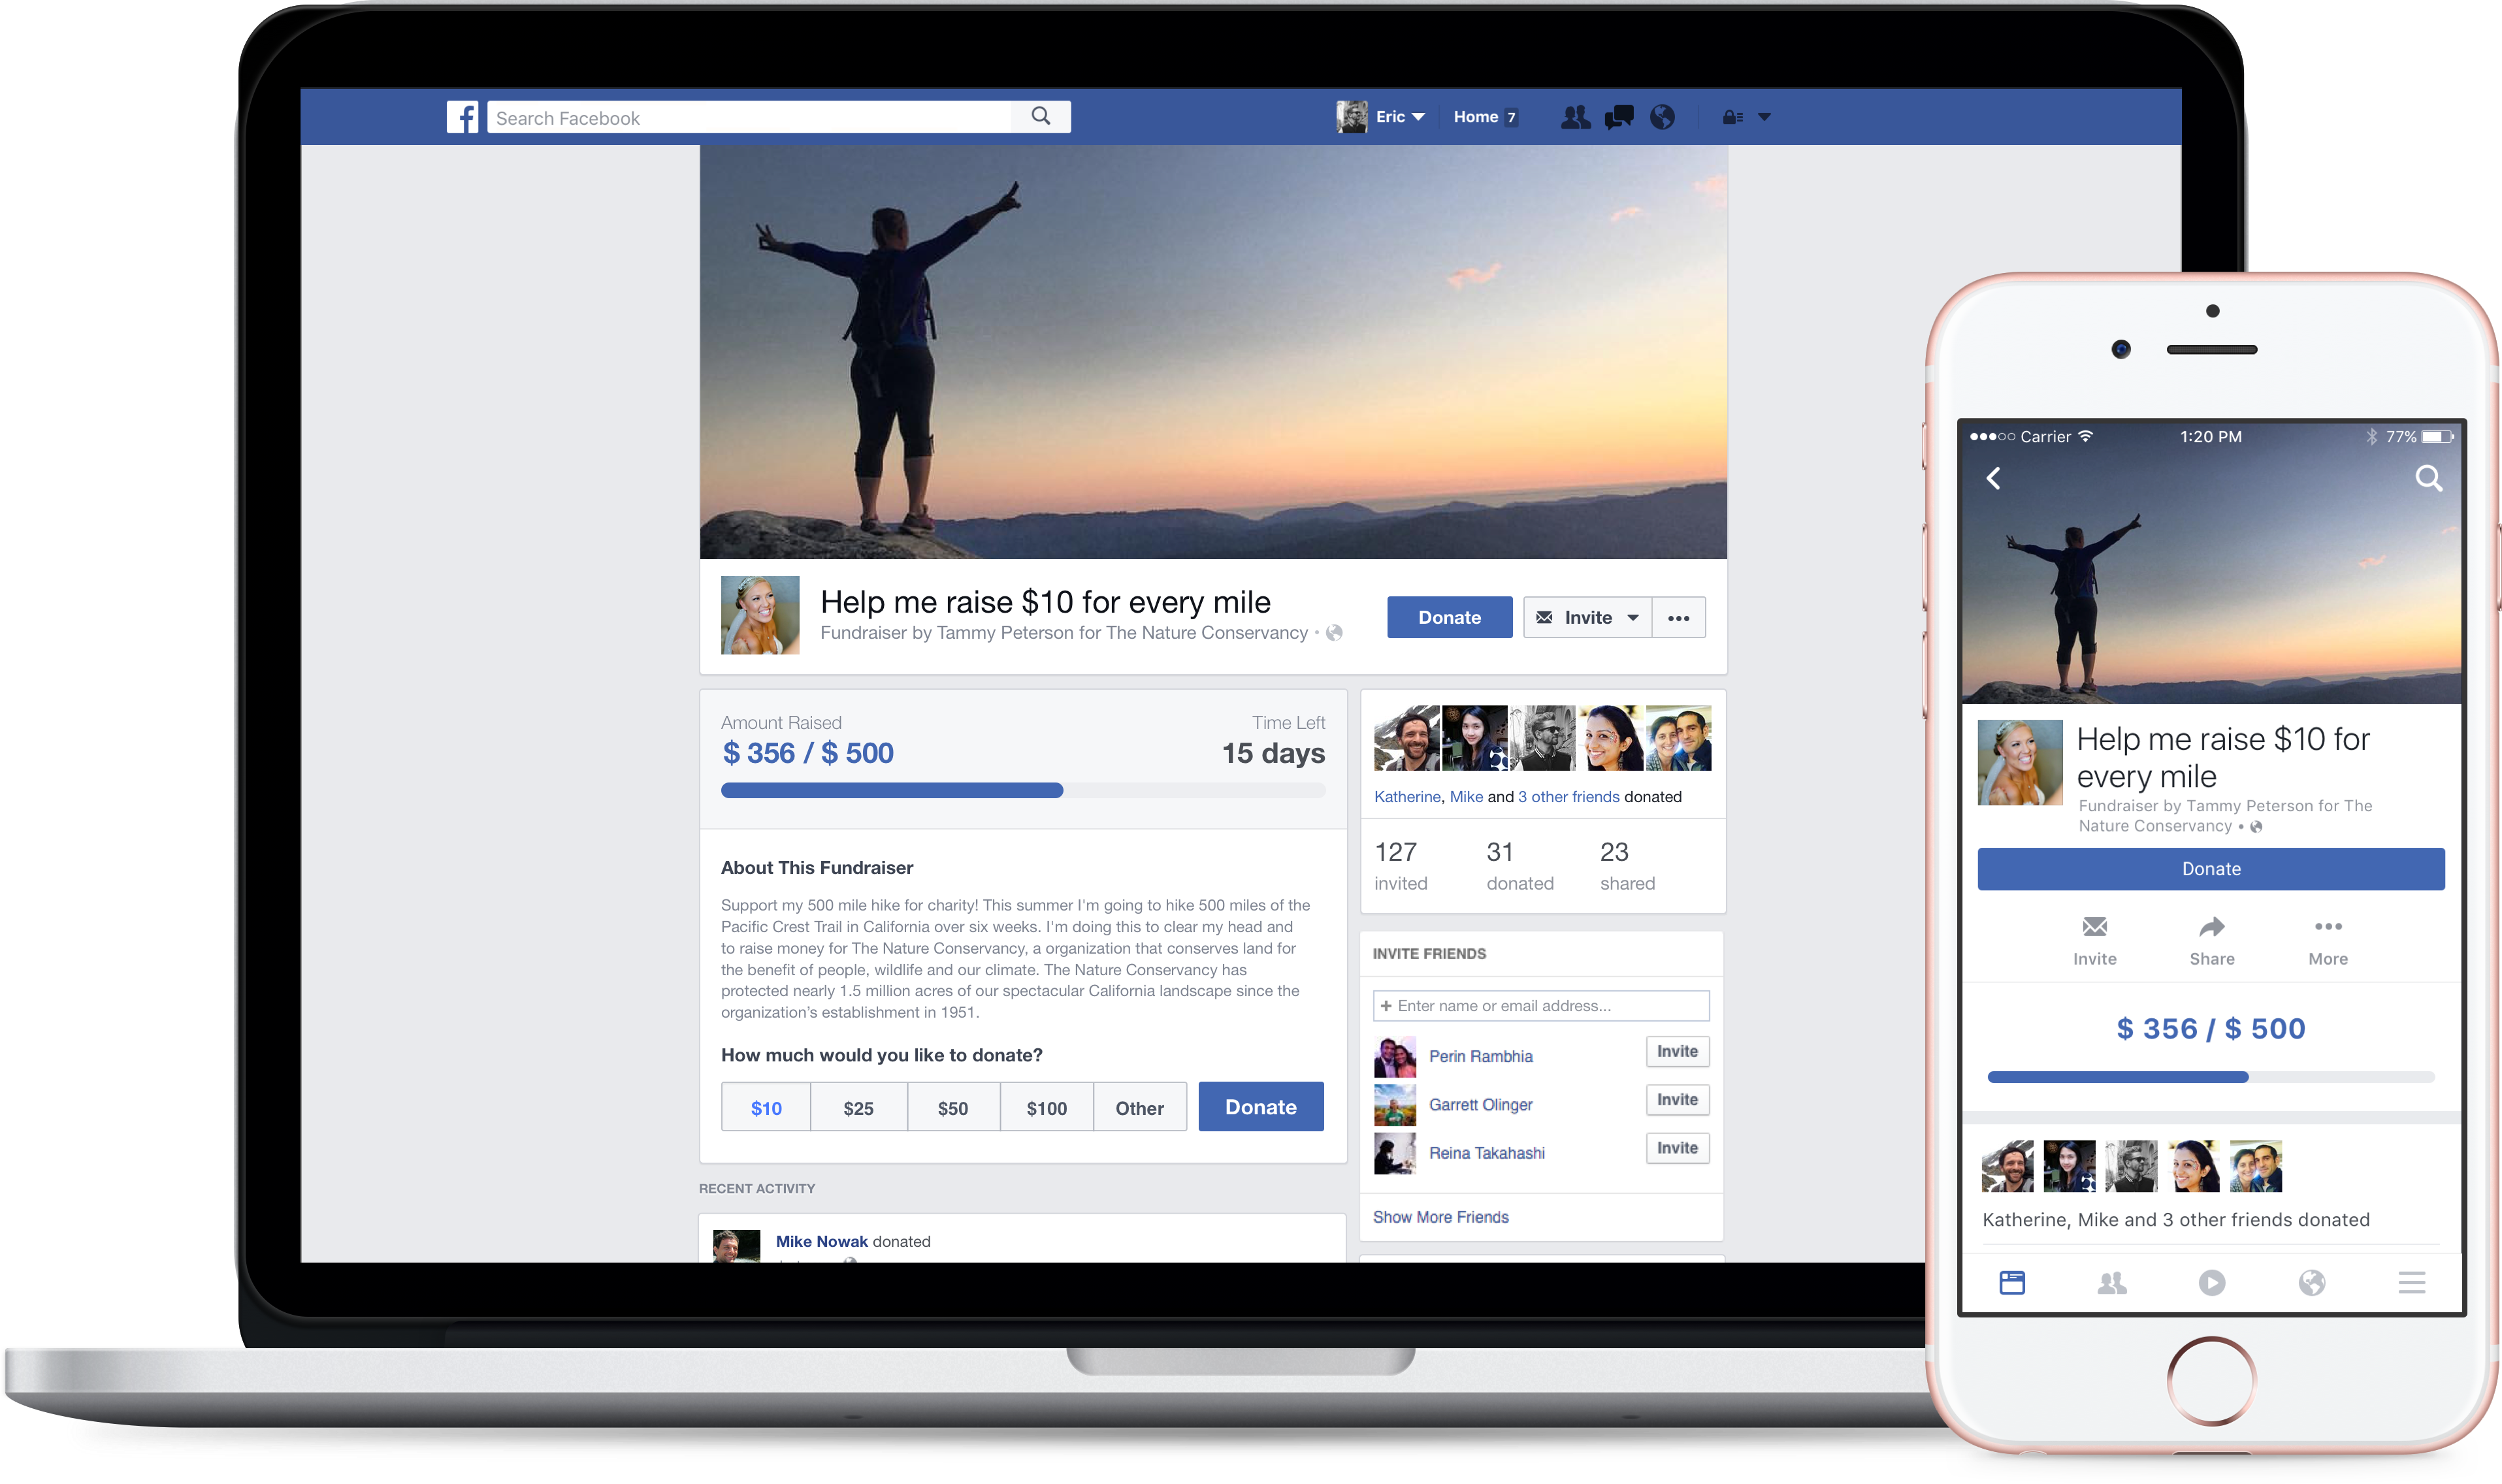 Facebook Just Made it Easier to Ask Friends for Charitable Donations